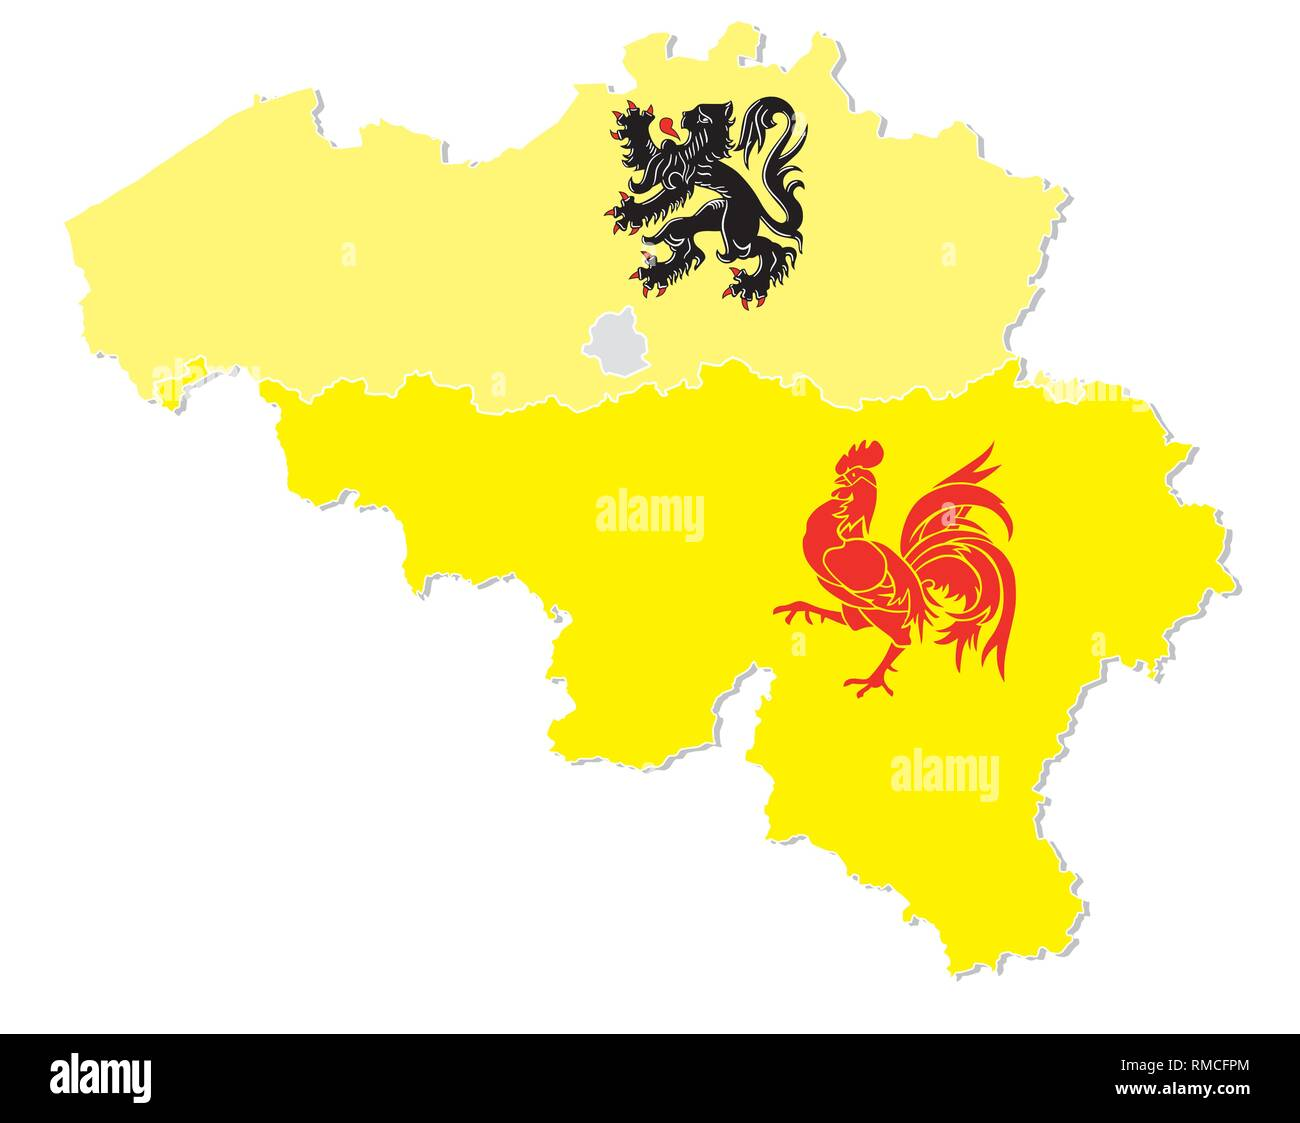 vector map of Belgium with the three regions Flemish, Wallonia and the capital Brussels in flag shape - Stock Image